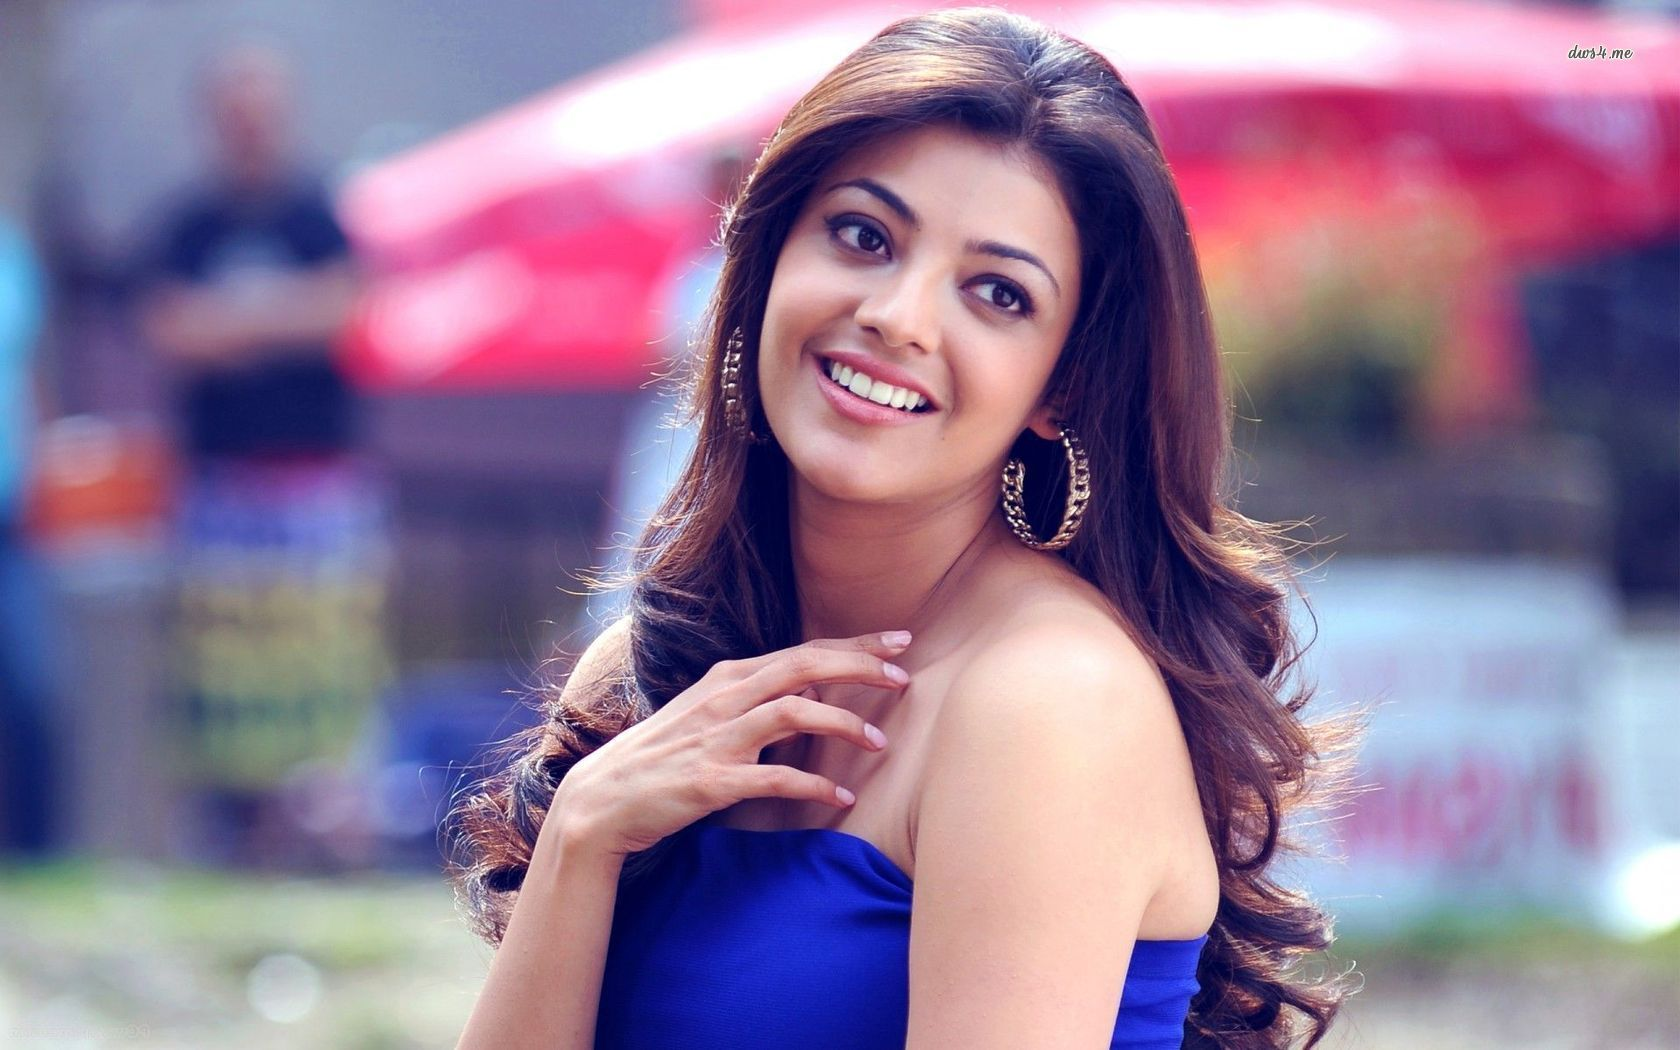 bollywood news, bollywood gossip, latest news, vikram, kajal aggarwal,bollywood, getanews.com